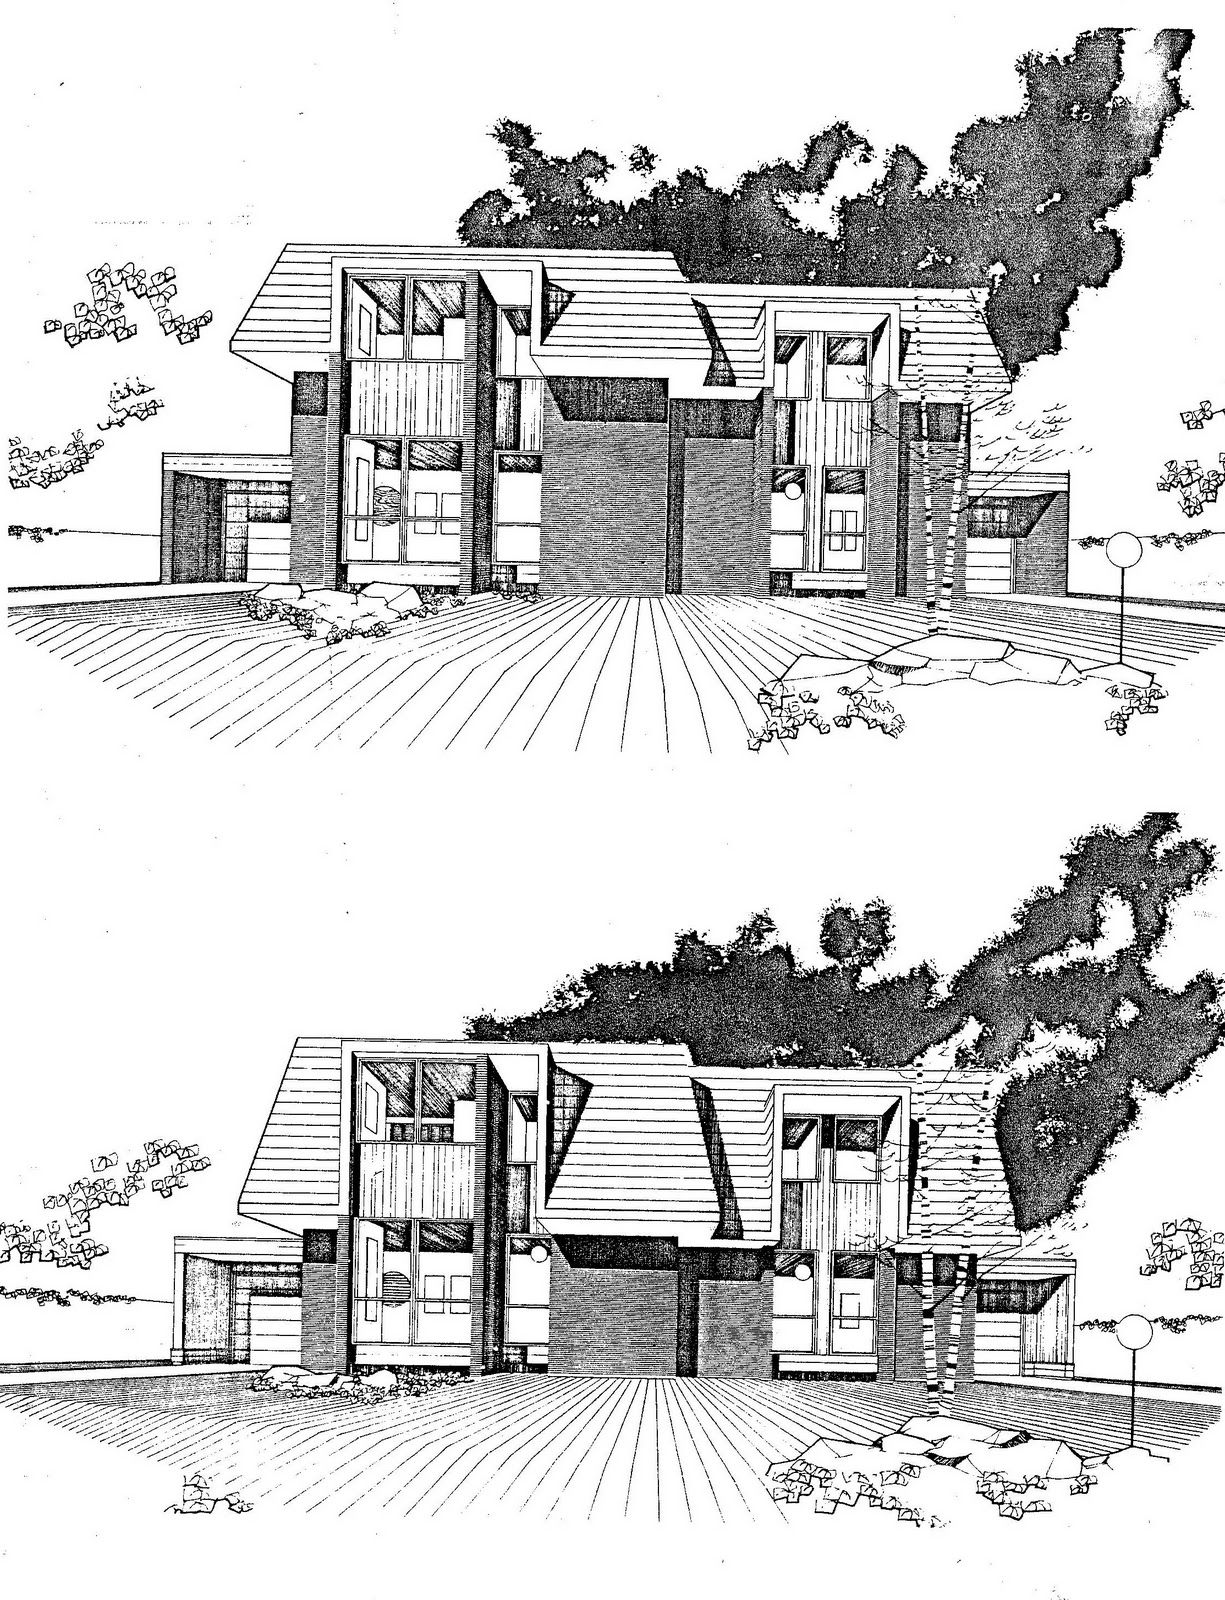 Mansard roof design sketch ideas and images mansard roof and roof